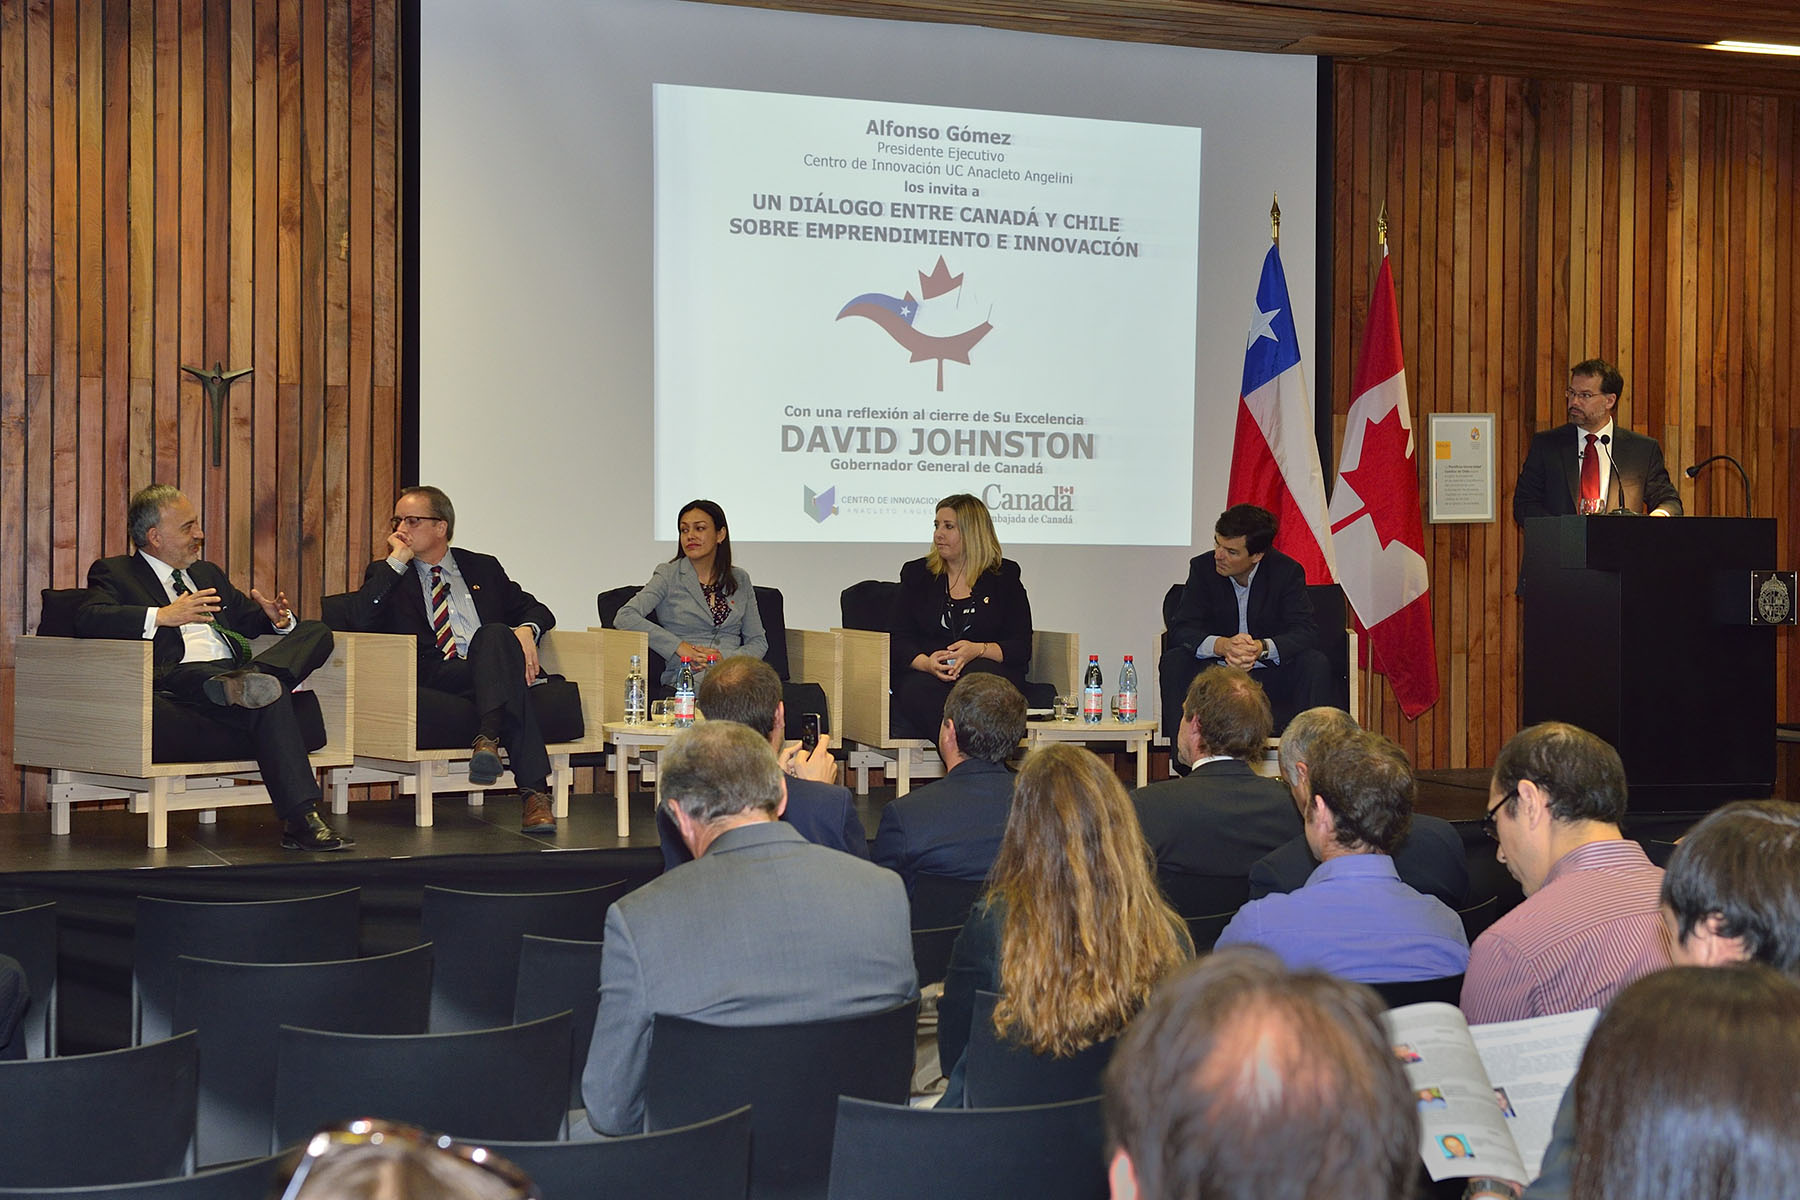 The discussion included testimonials from a Canadian-Chilean angel investor and the owner of a Chilean start-up who have established a successful business relationship.